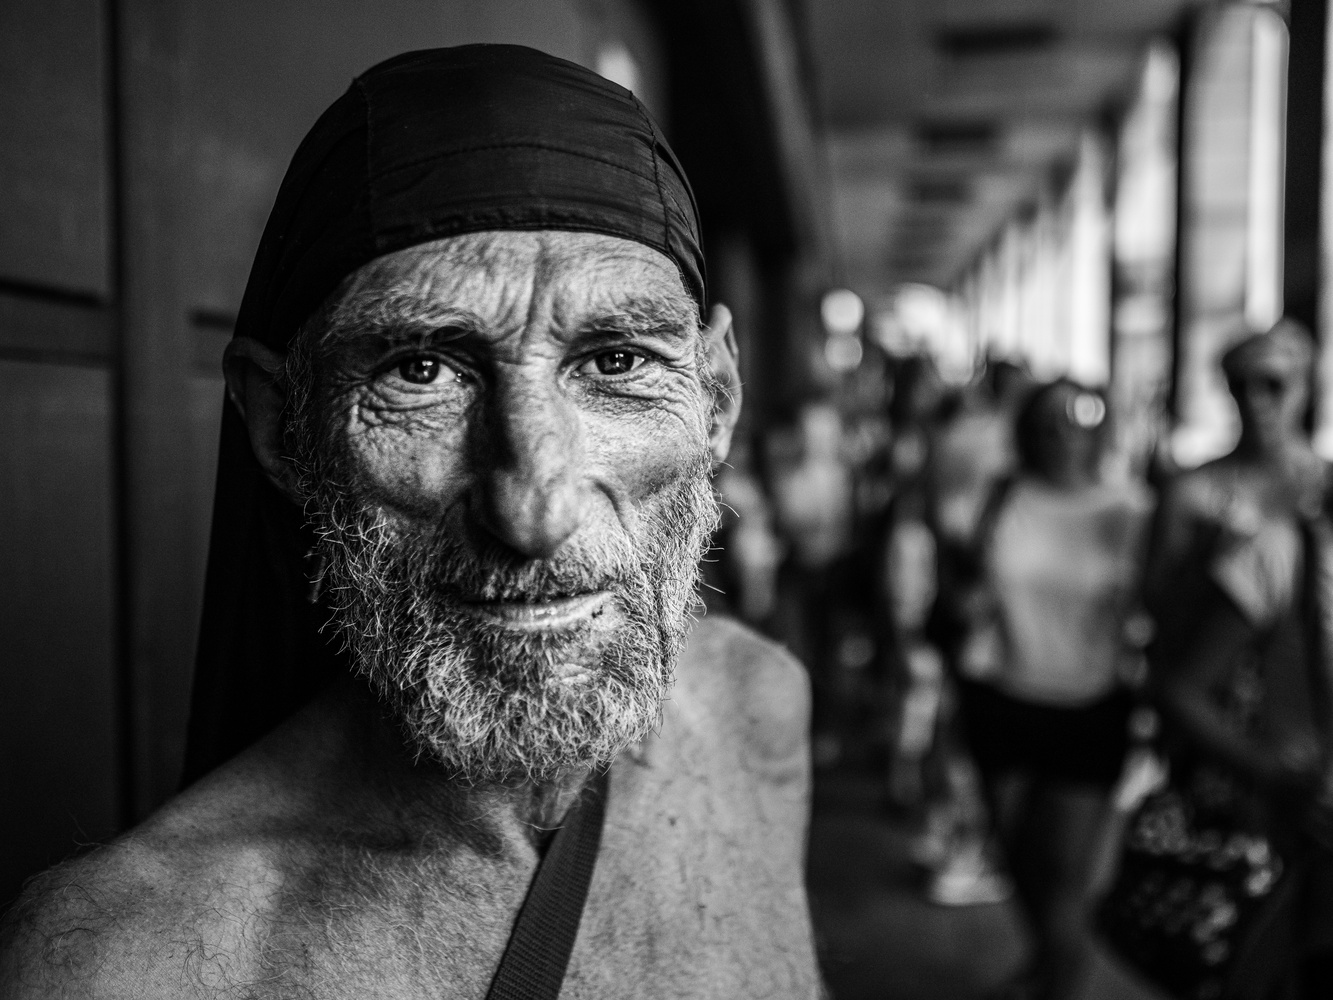 Street Portrait of Simon by Tomasz Kowalski